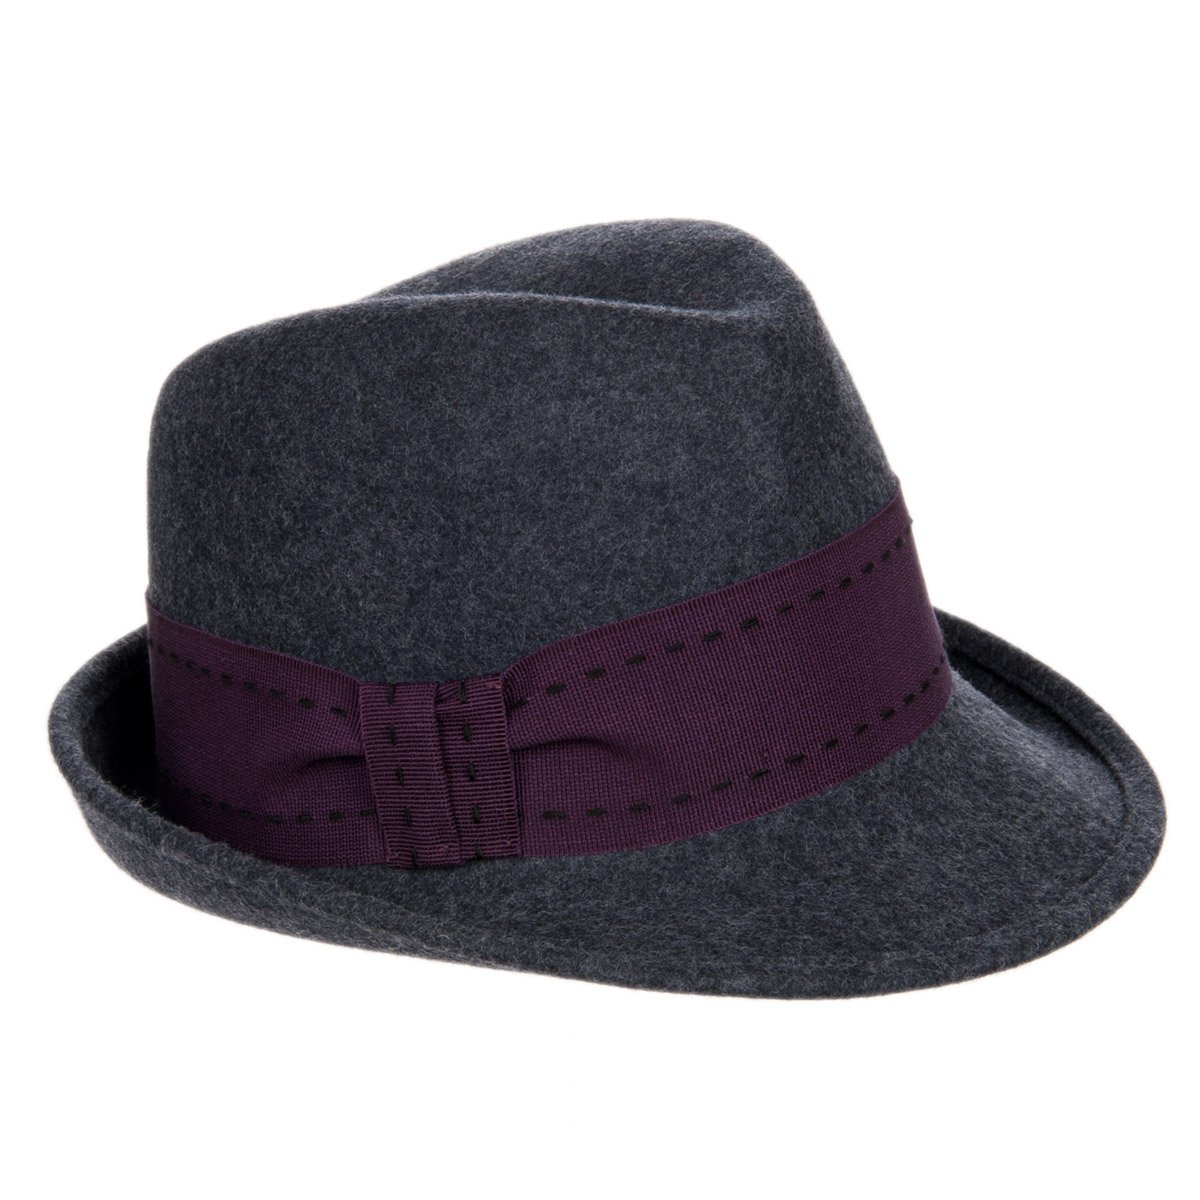 49811b9a4a606 Trilby with coloured hatband for women